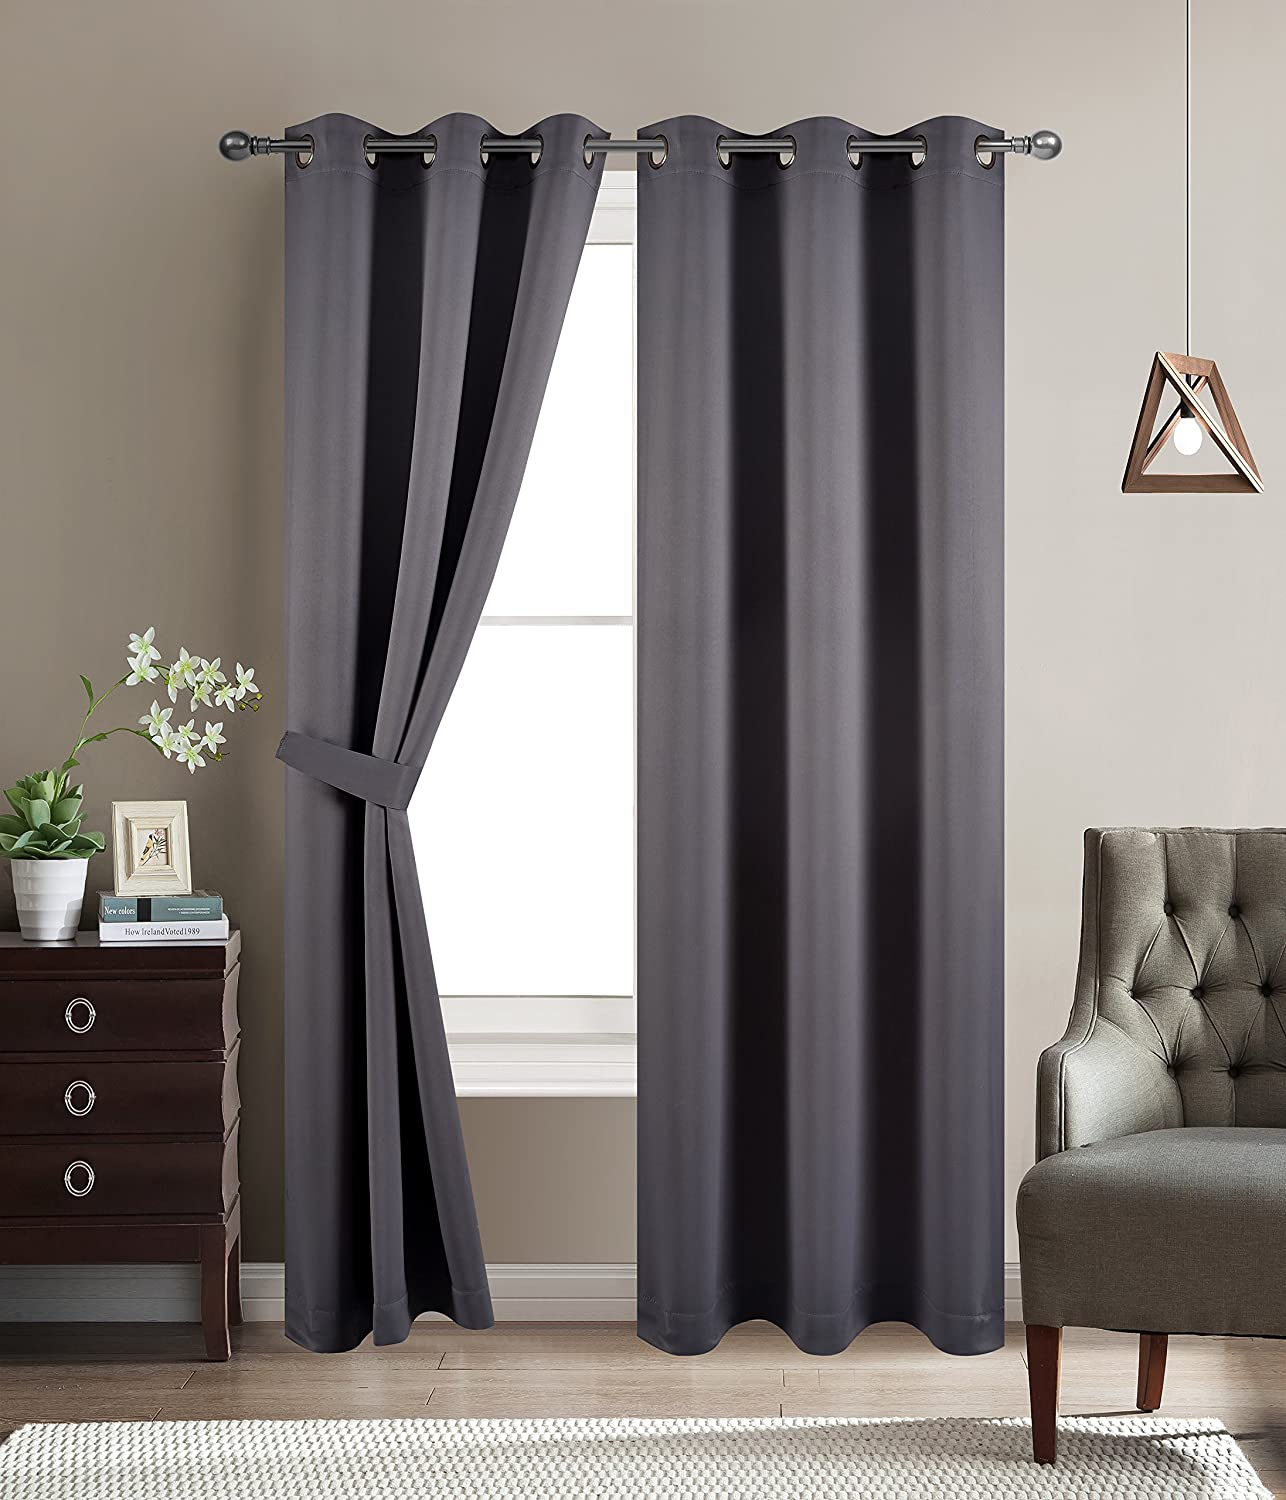 BETTER HOME USA Blackout Room Darkening Curtains Grommet Window Panel Drapes Dark Grey - 2 Panel Set 38x96 Inch